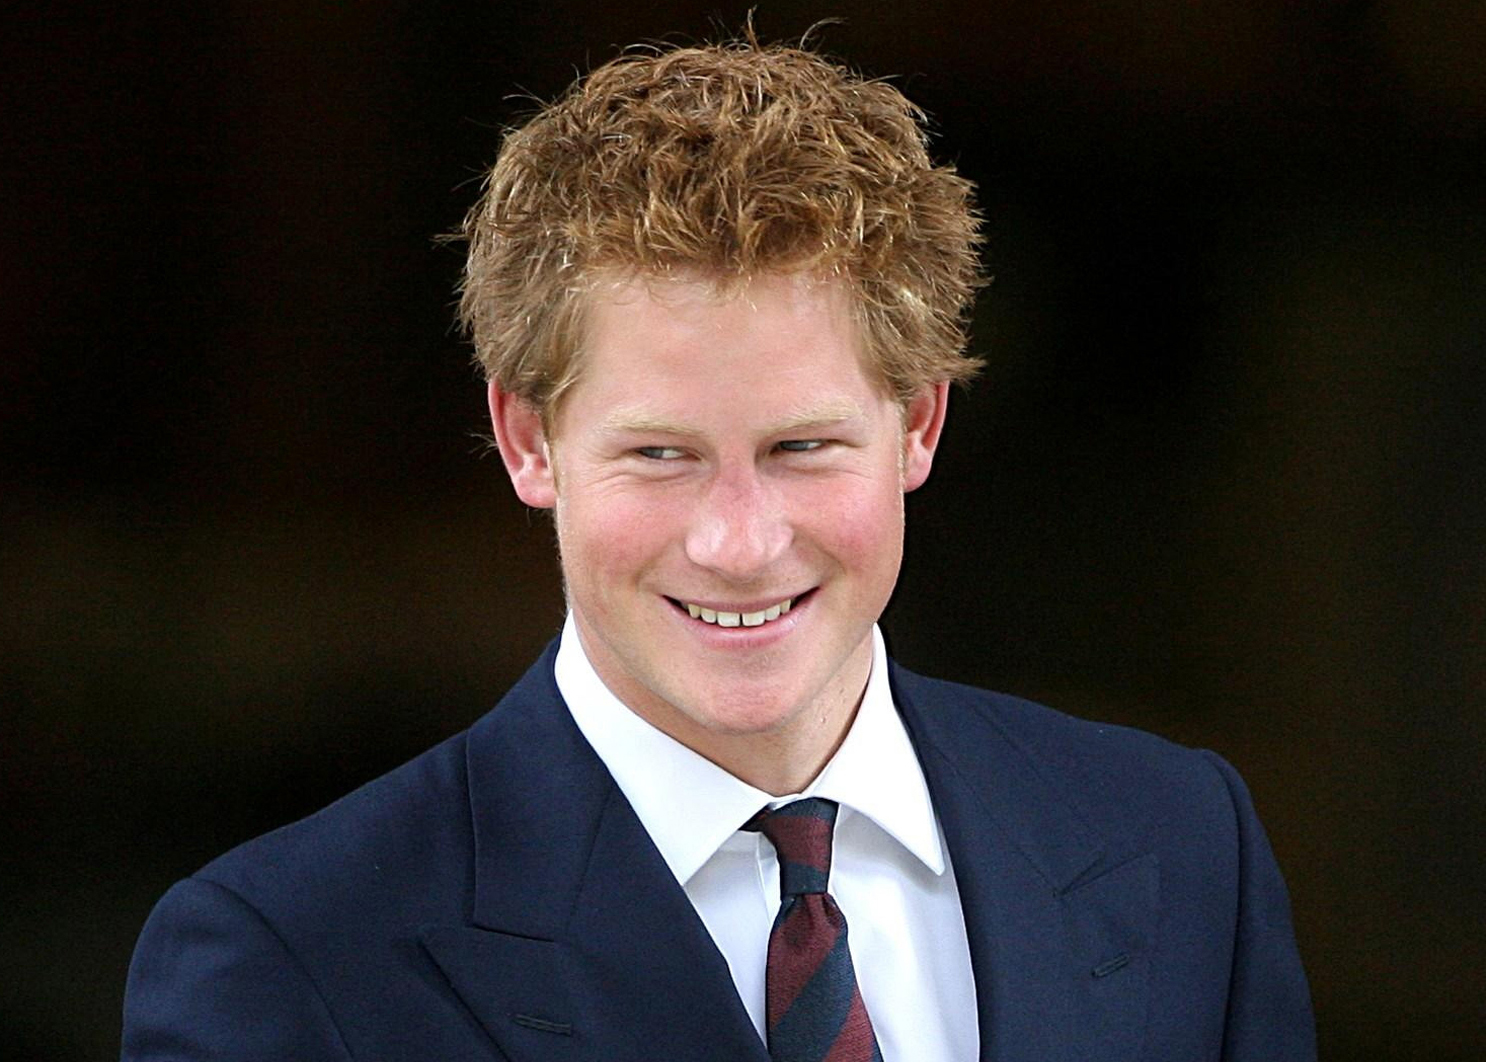 Prince Harry Dating Egyptian Heiress Enayat Younes?